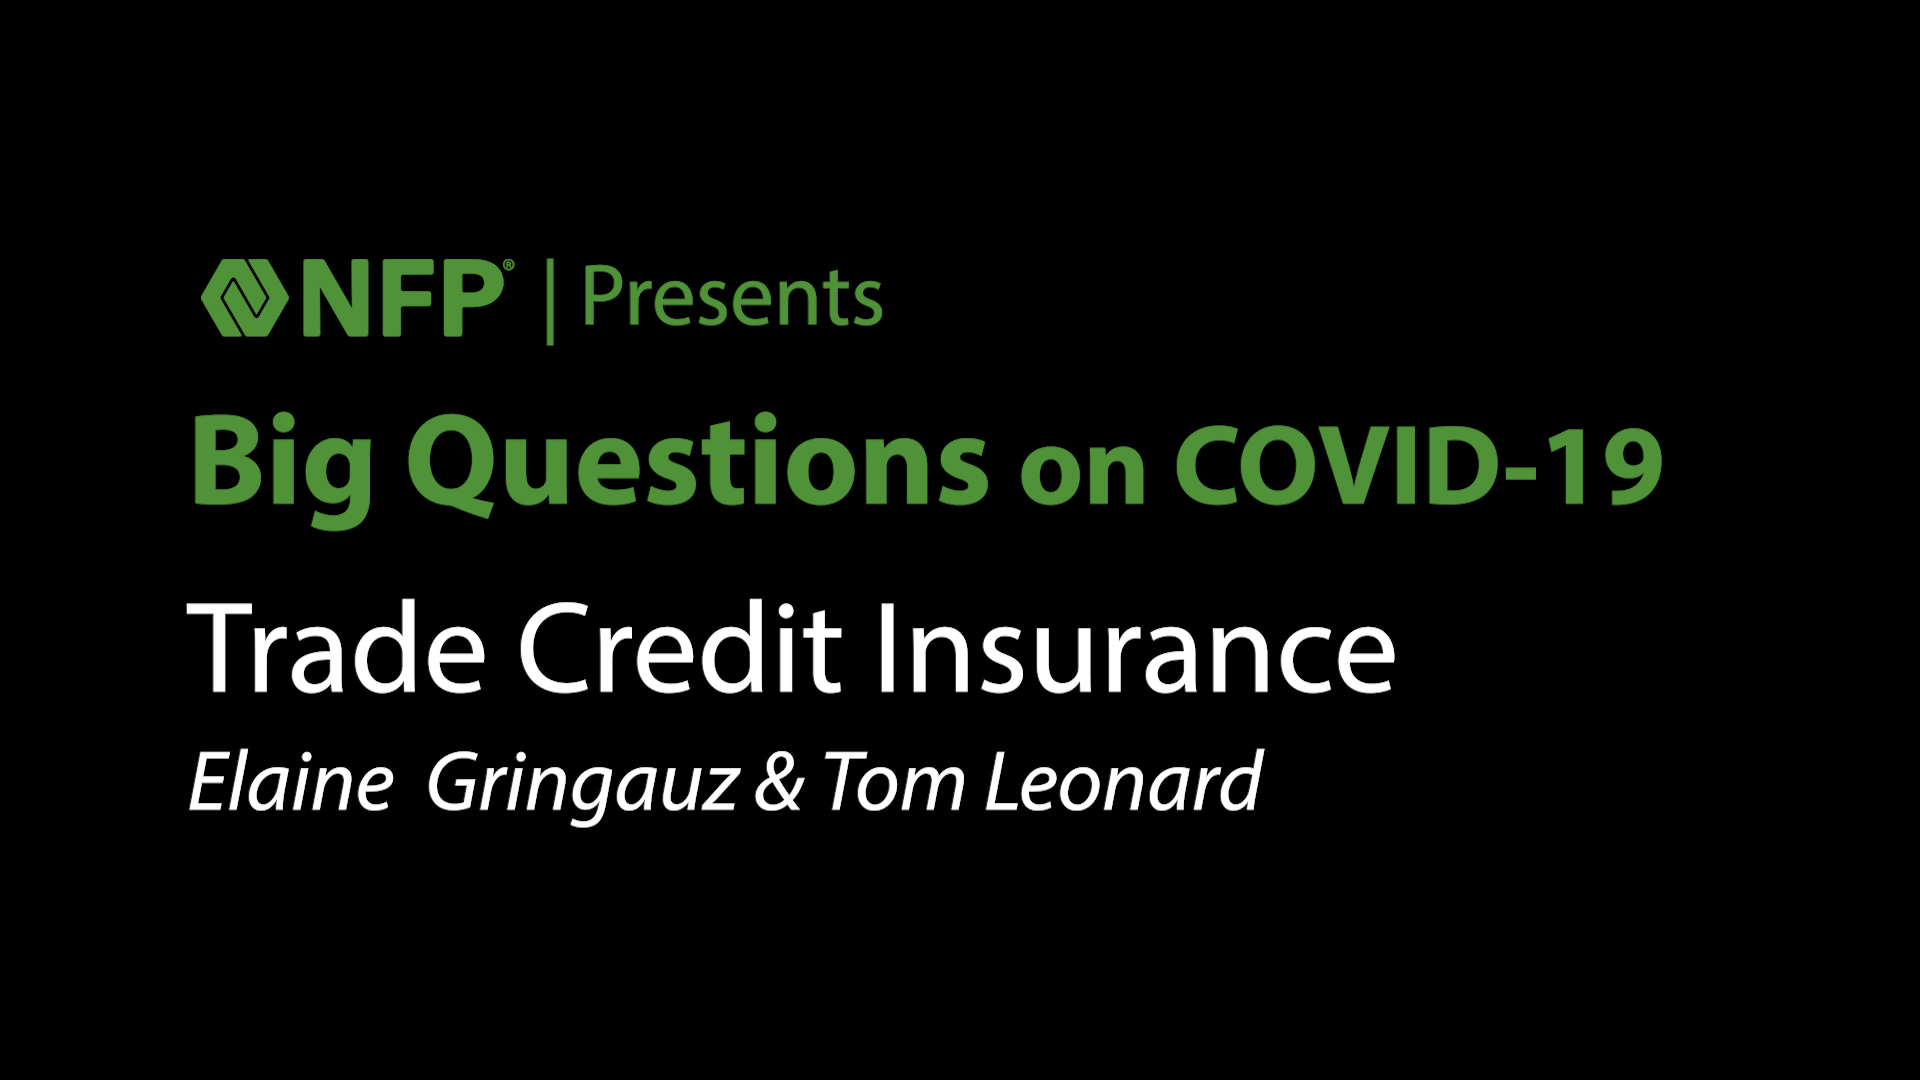 thumbnail image of Big Questions on COVID-19 - Trade Credit Insurance with Elaine Gringuaz and Tom Leonard